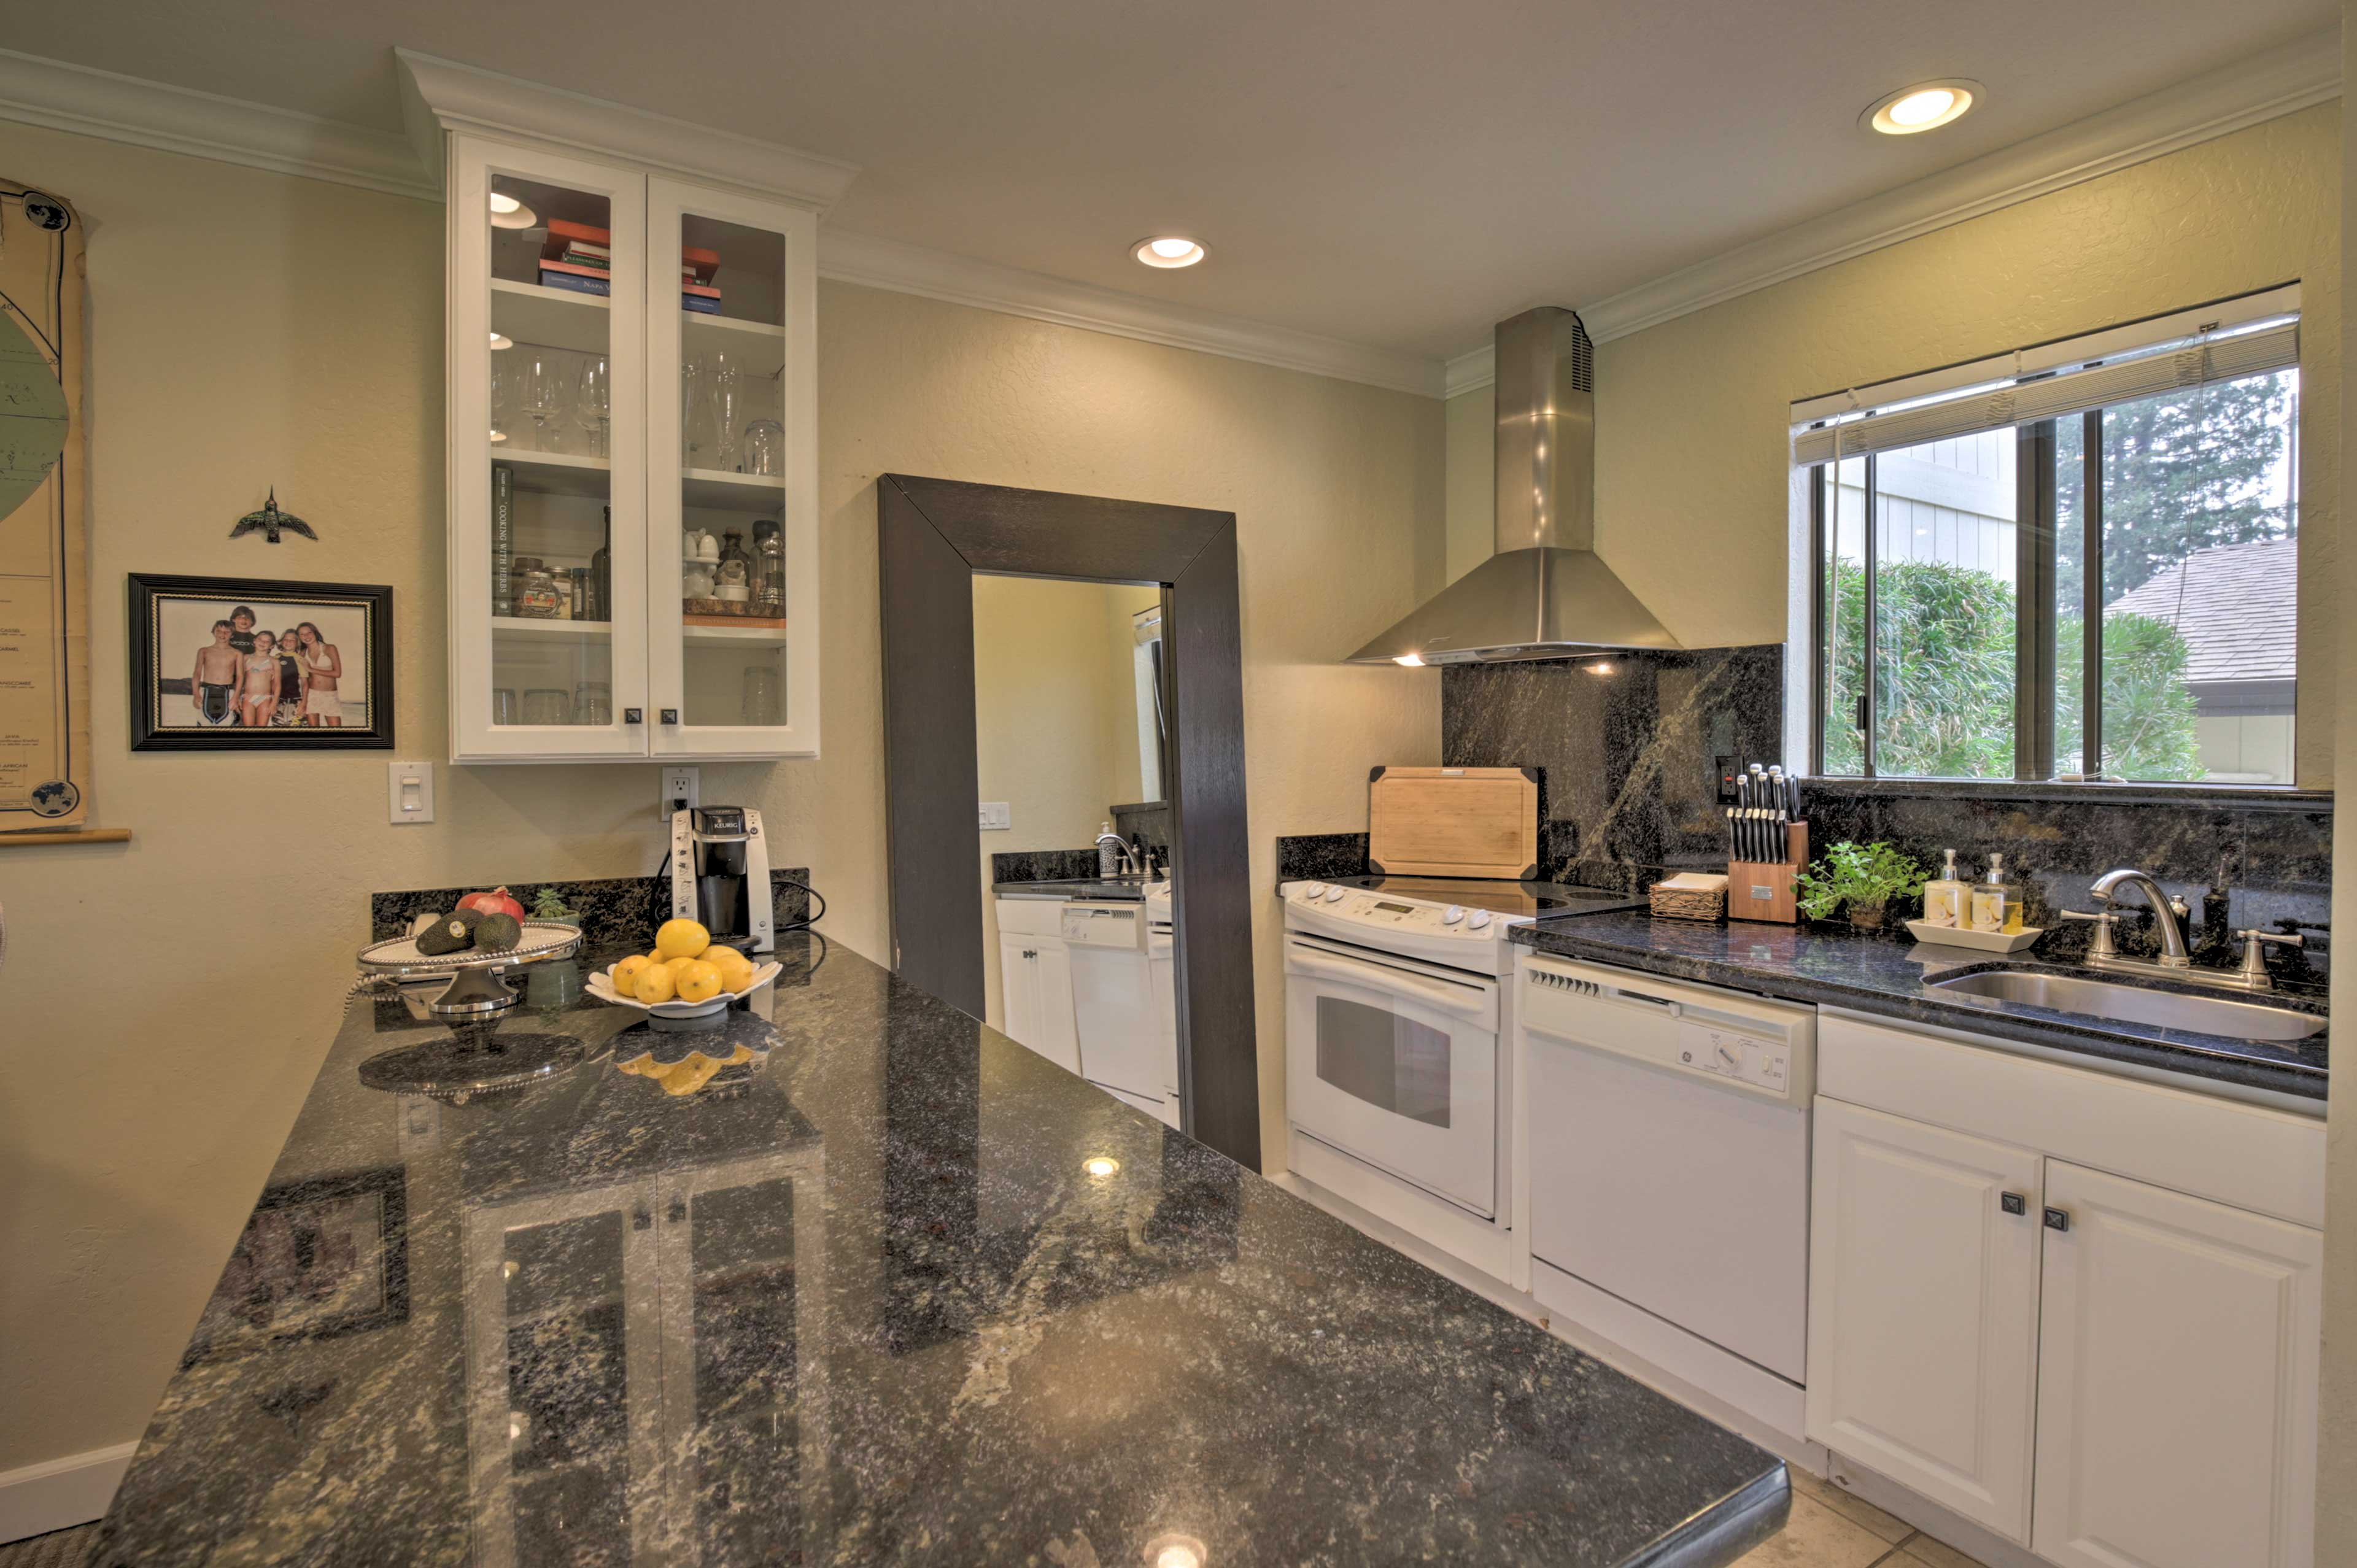 The kitchen offers basic cooking needs ensuring home-cooked meals are a breeze.